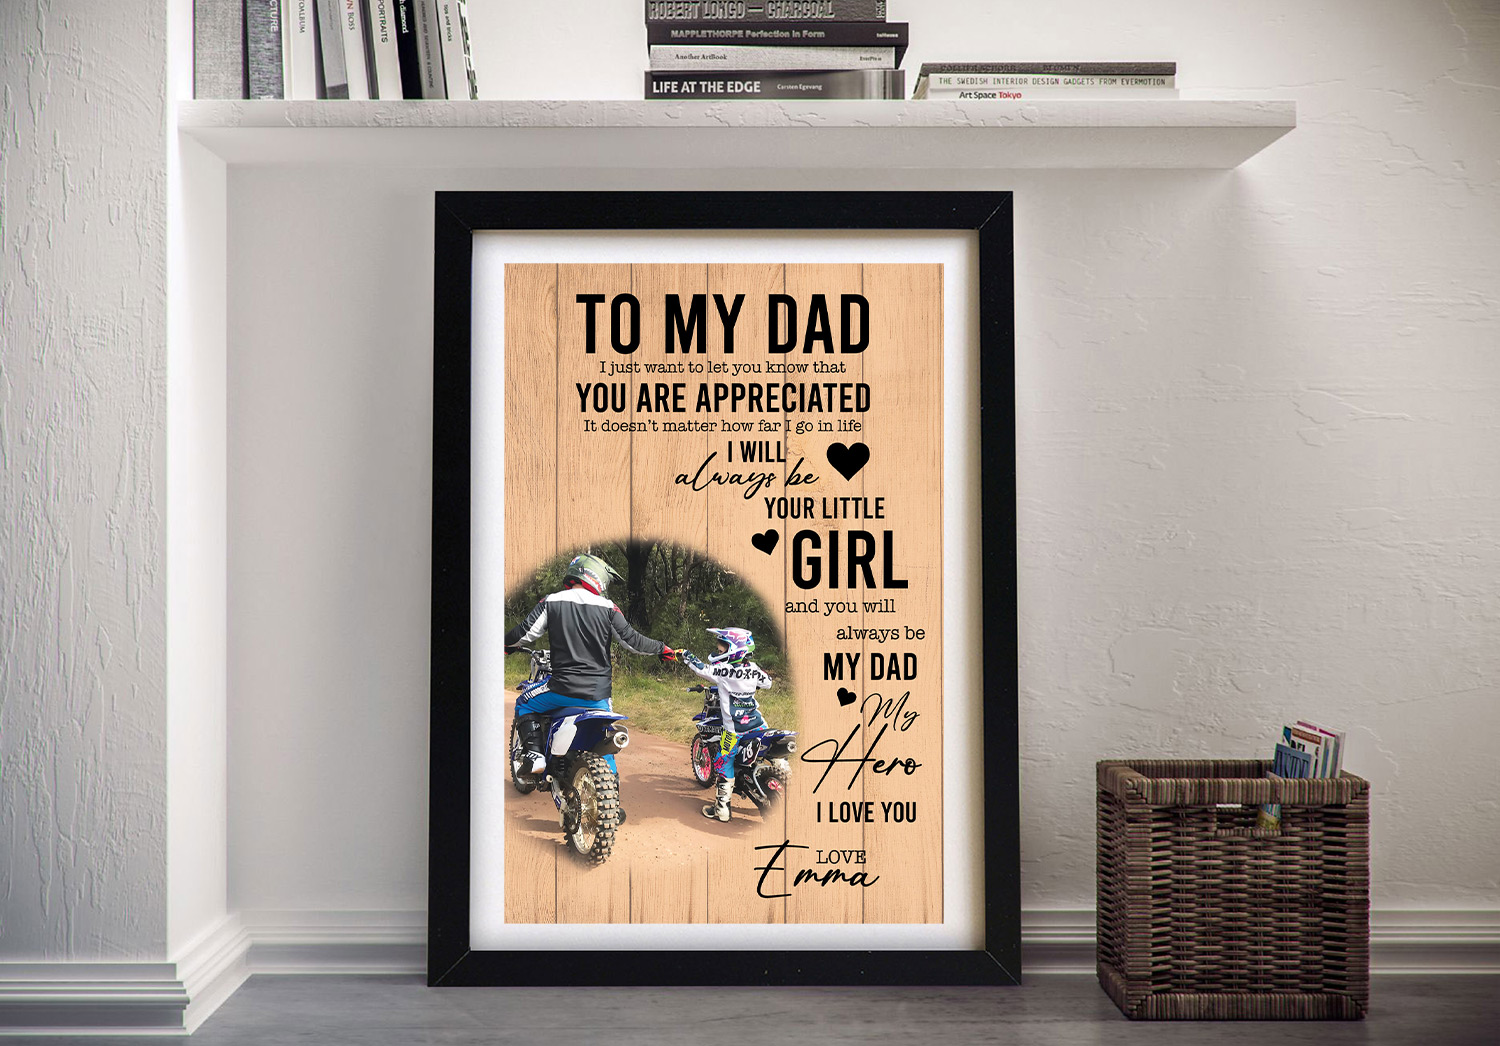 Buy a Framed Fathers Day Canvas Print | To My Dad Custom Art